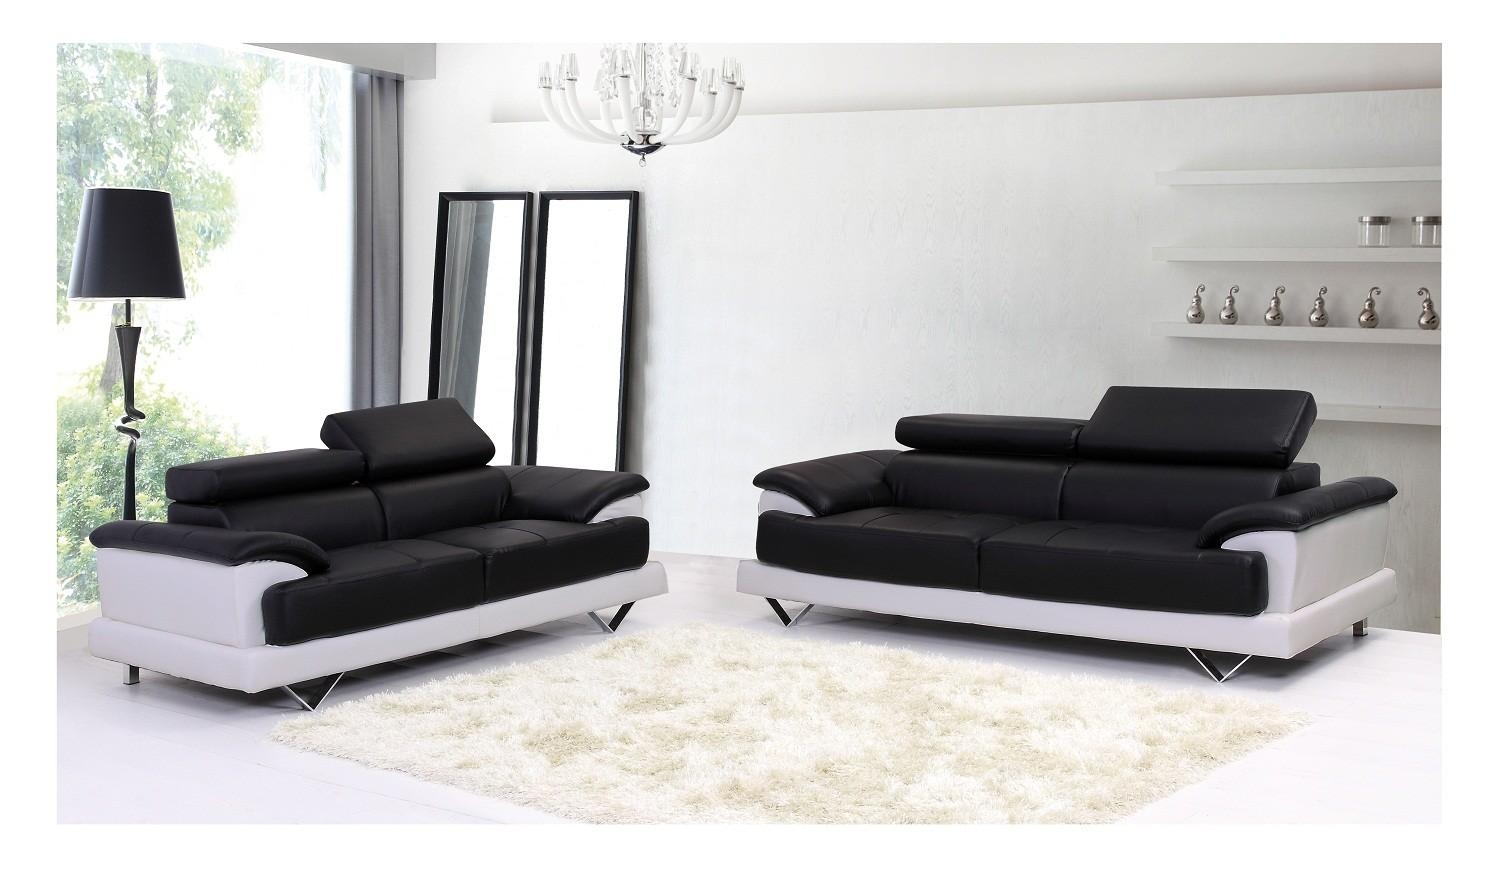 Cosmo Black And White Leather 3 And 2 Seater Leather Sofas With White And Black Sofas (Image 16 of 21)